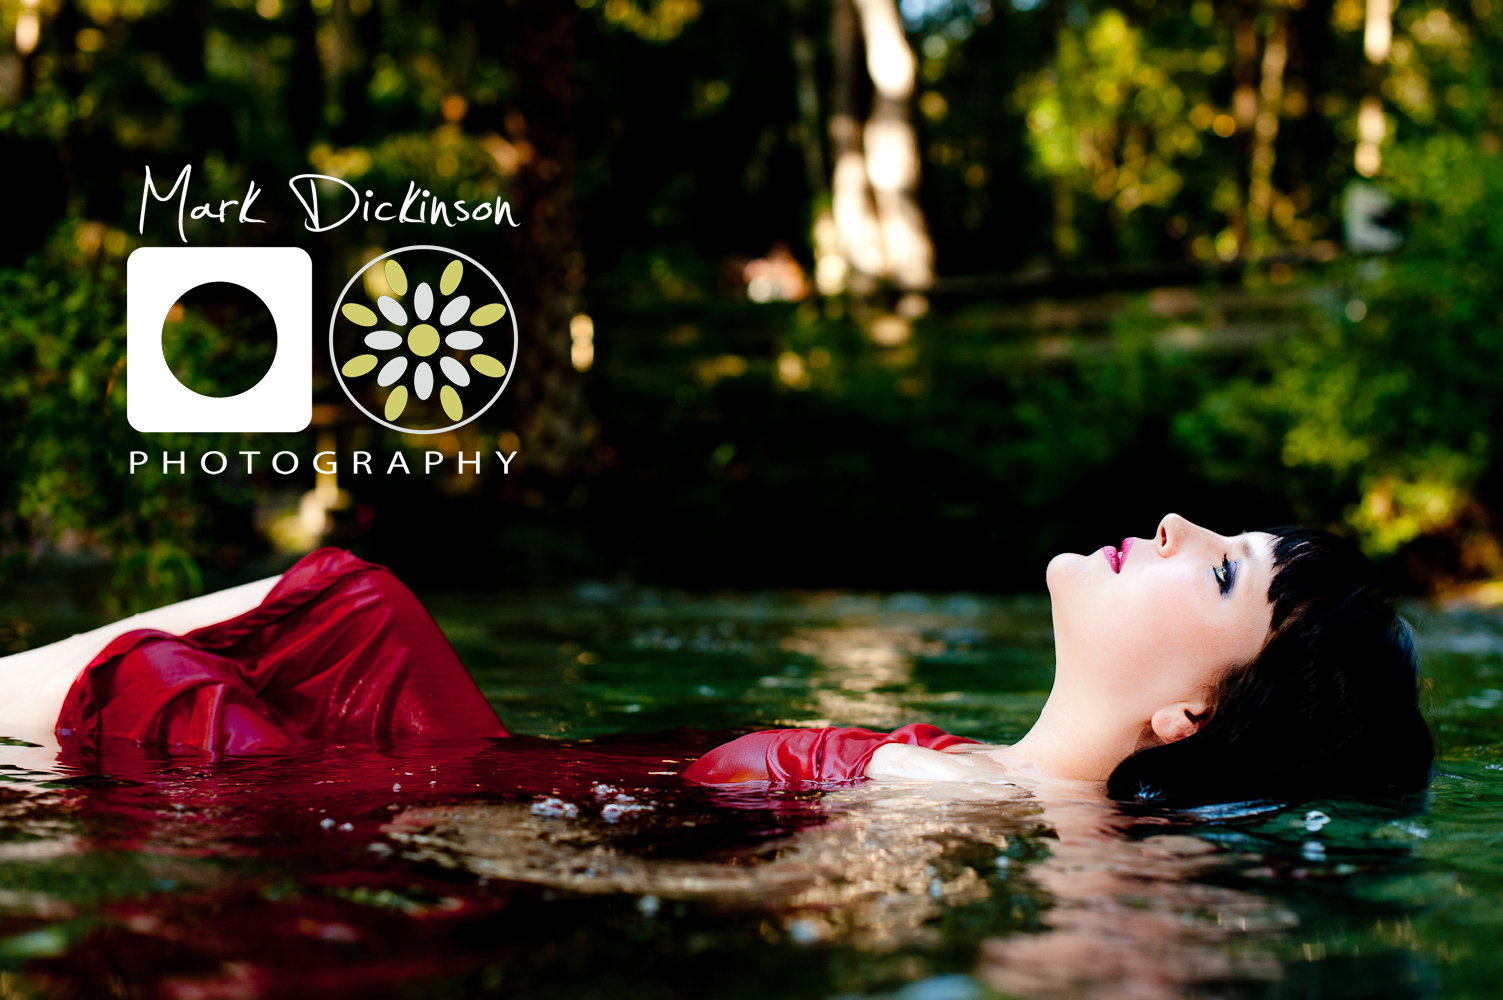 Mark Dickinson Photography | Girl with red dress in river floating